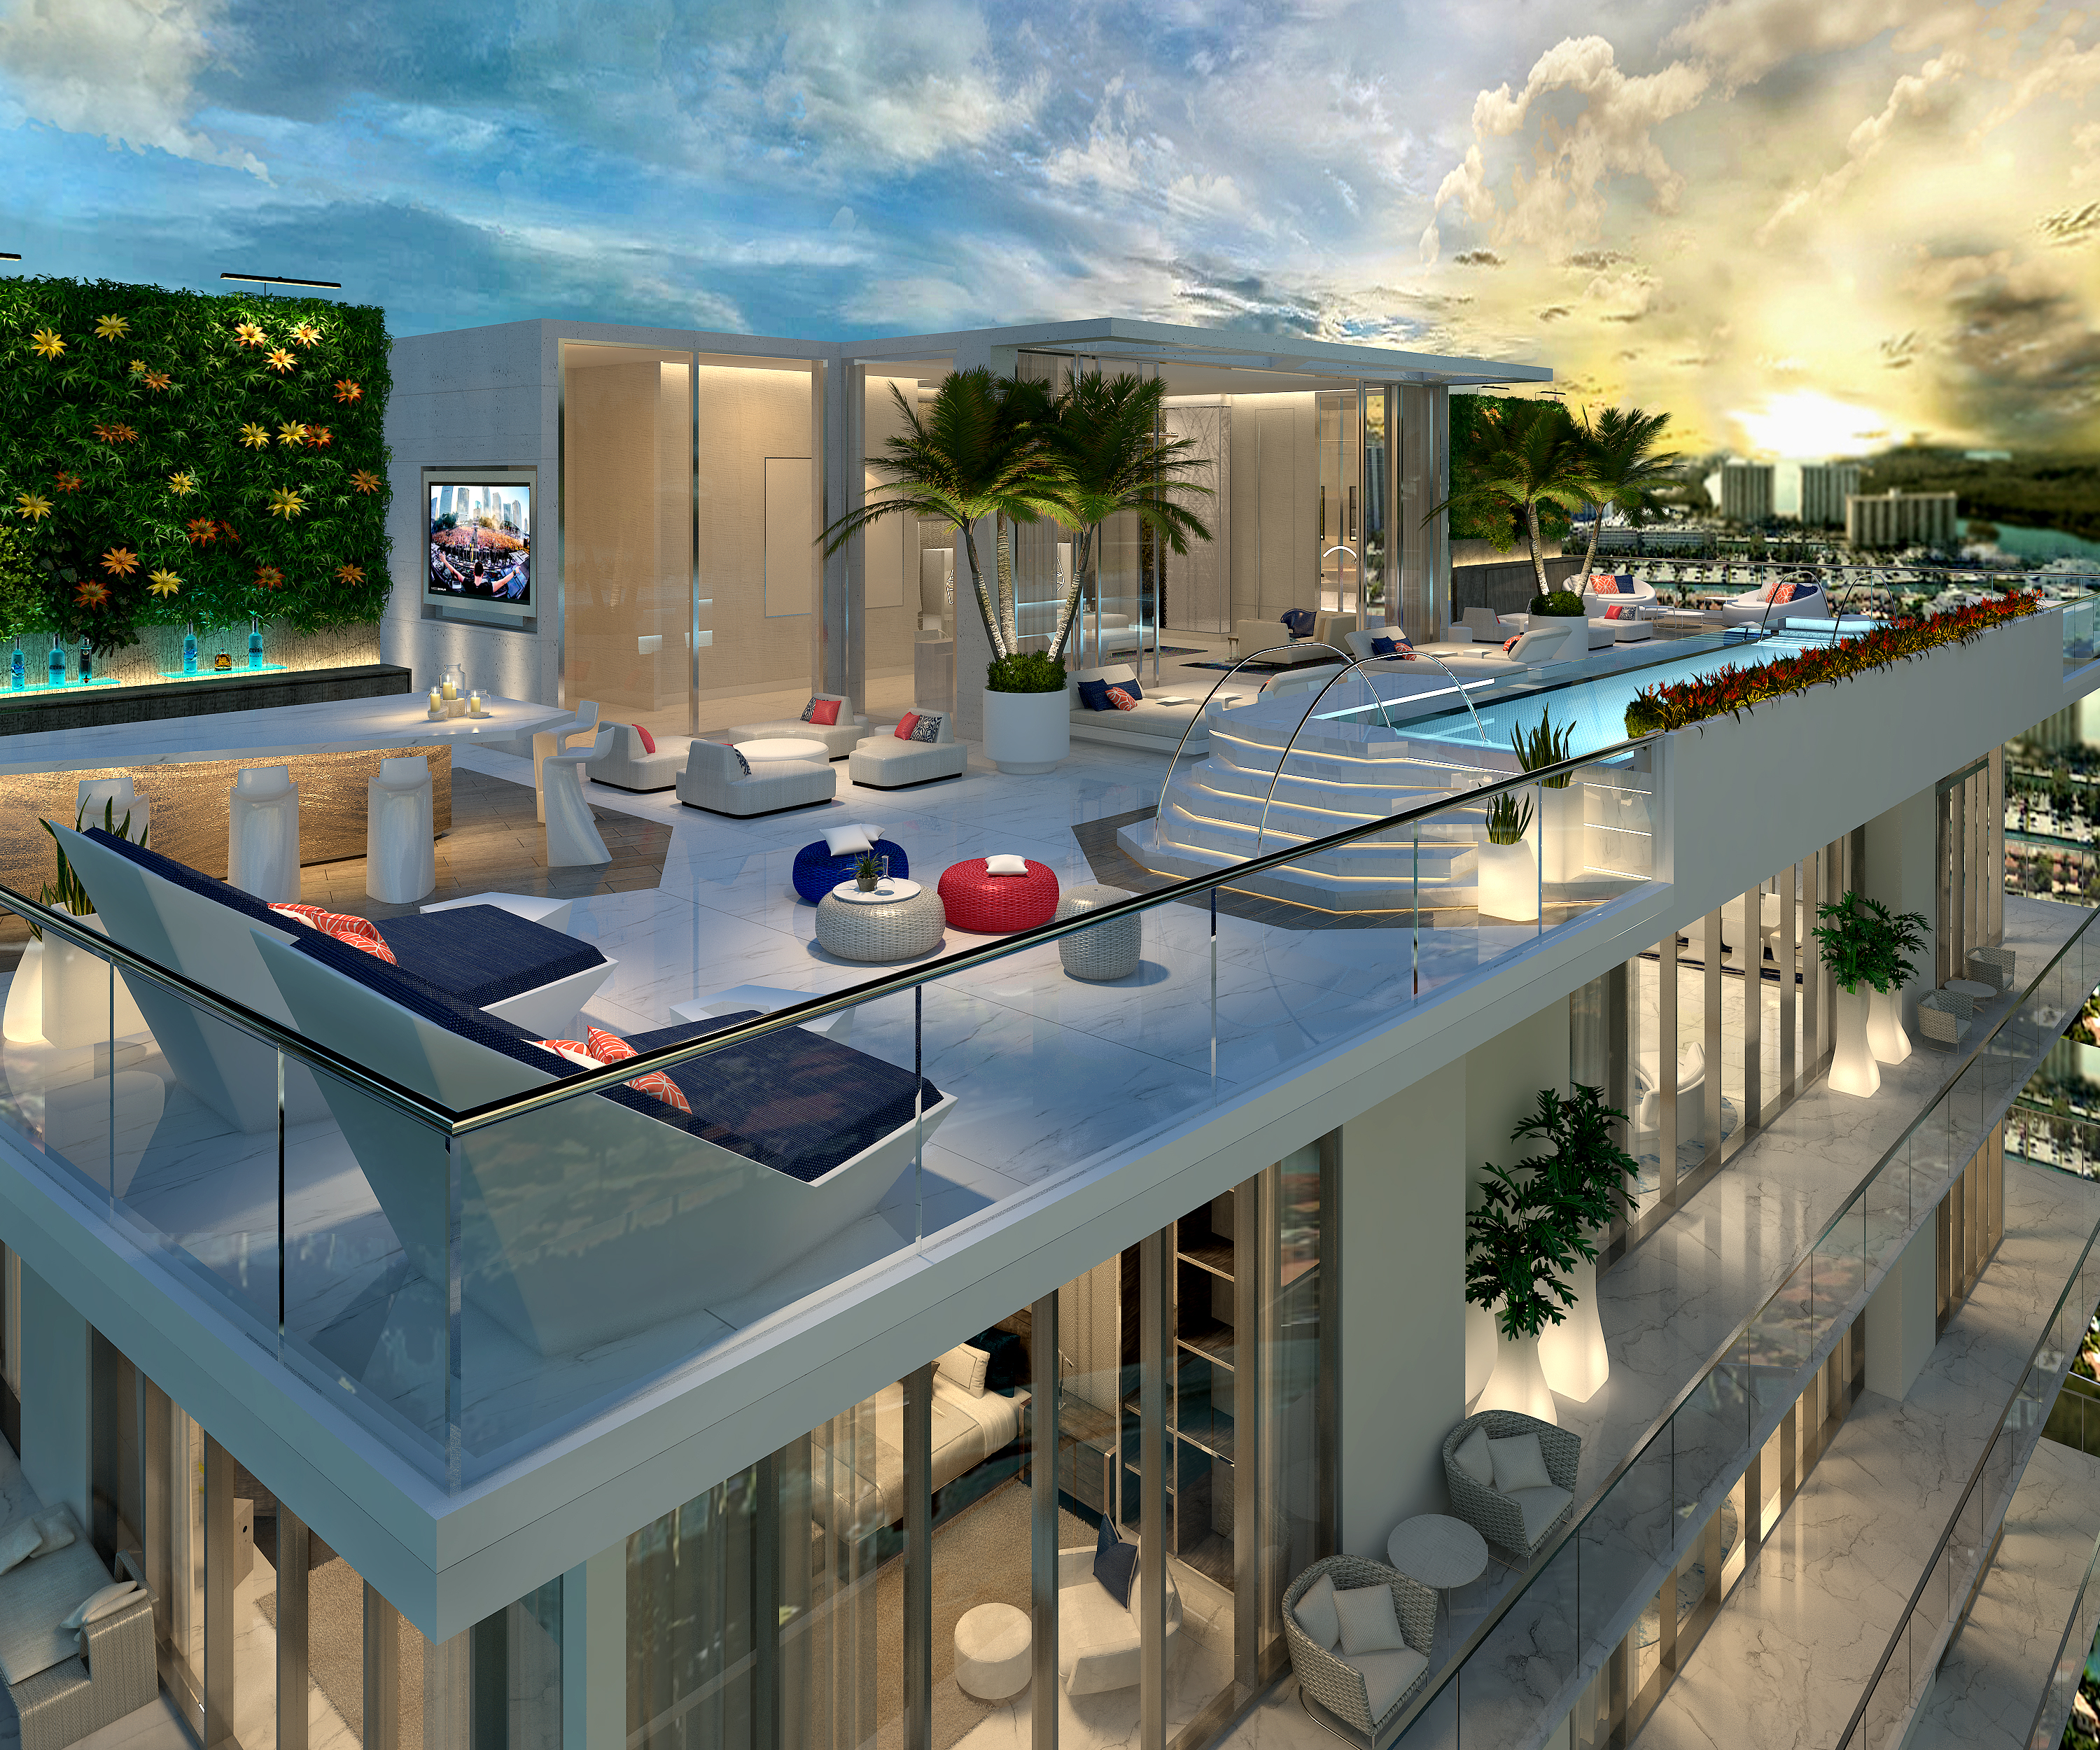 Tower Suite Rooftop Terrace with Private Pool